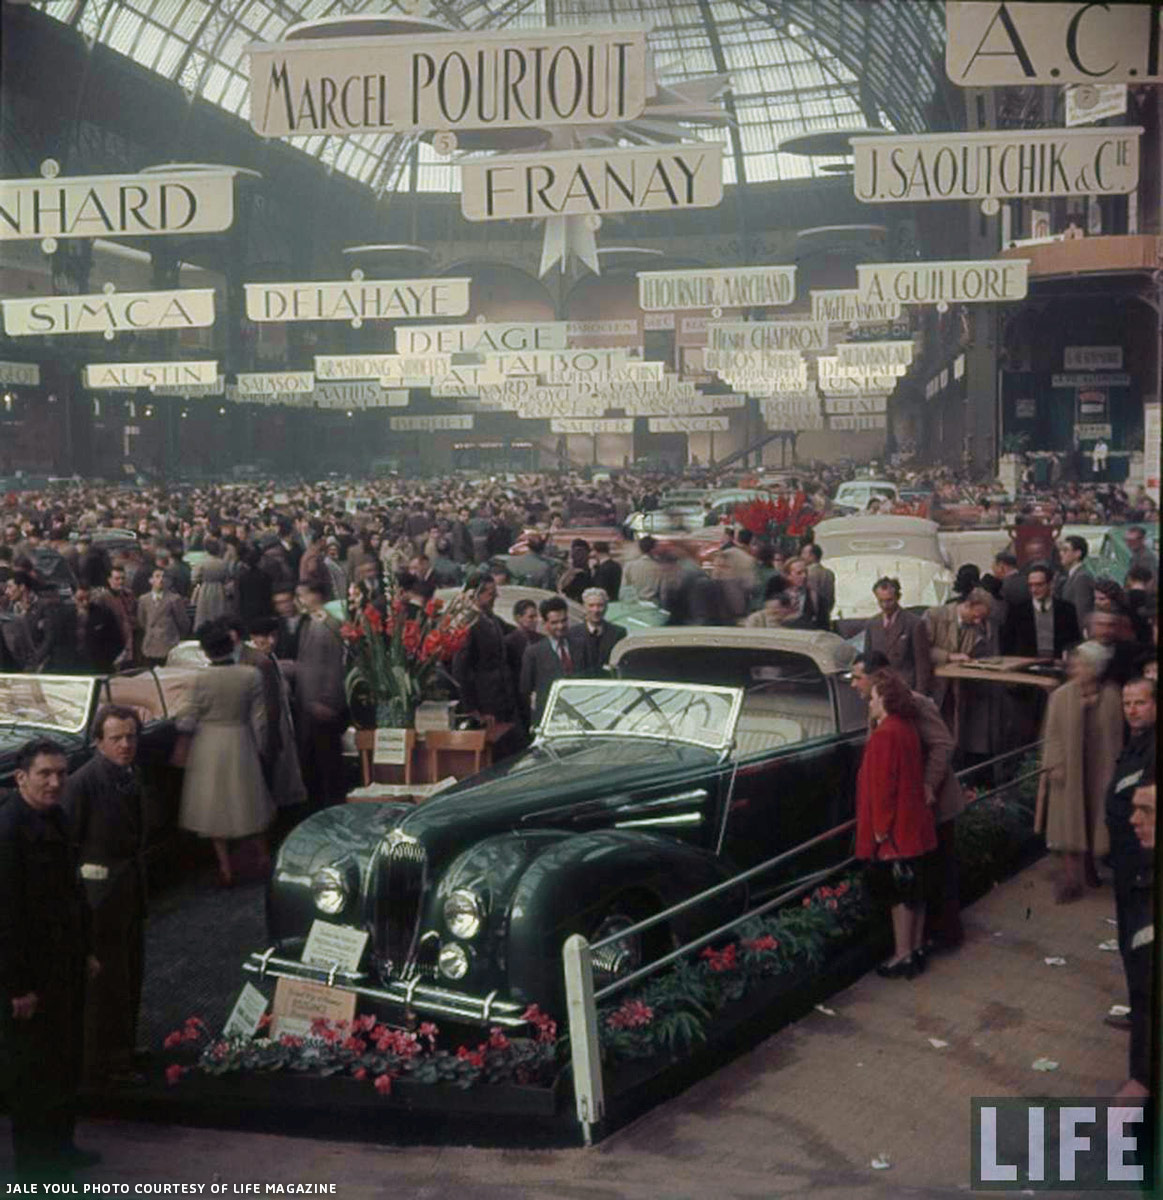 1948 paris salon car show custom car chroniclecustom car chronicle. Black Bedroom Furniture Sets. Home Design Ideas